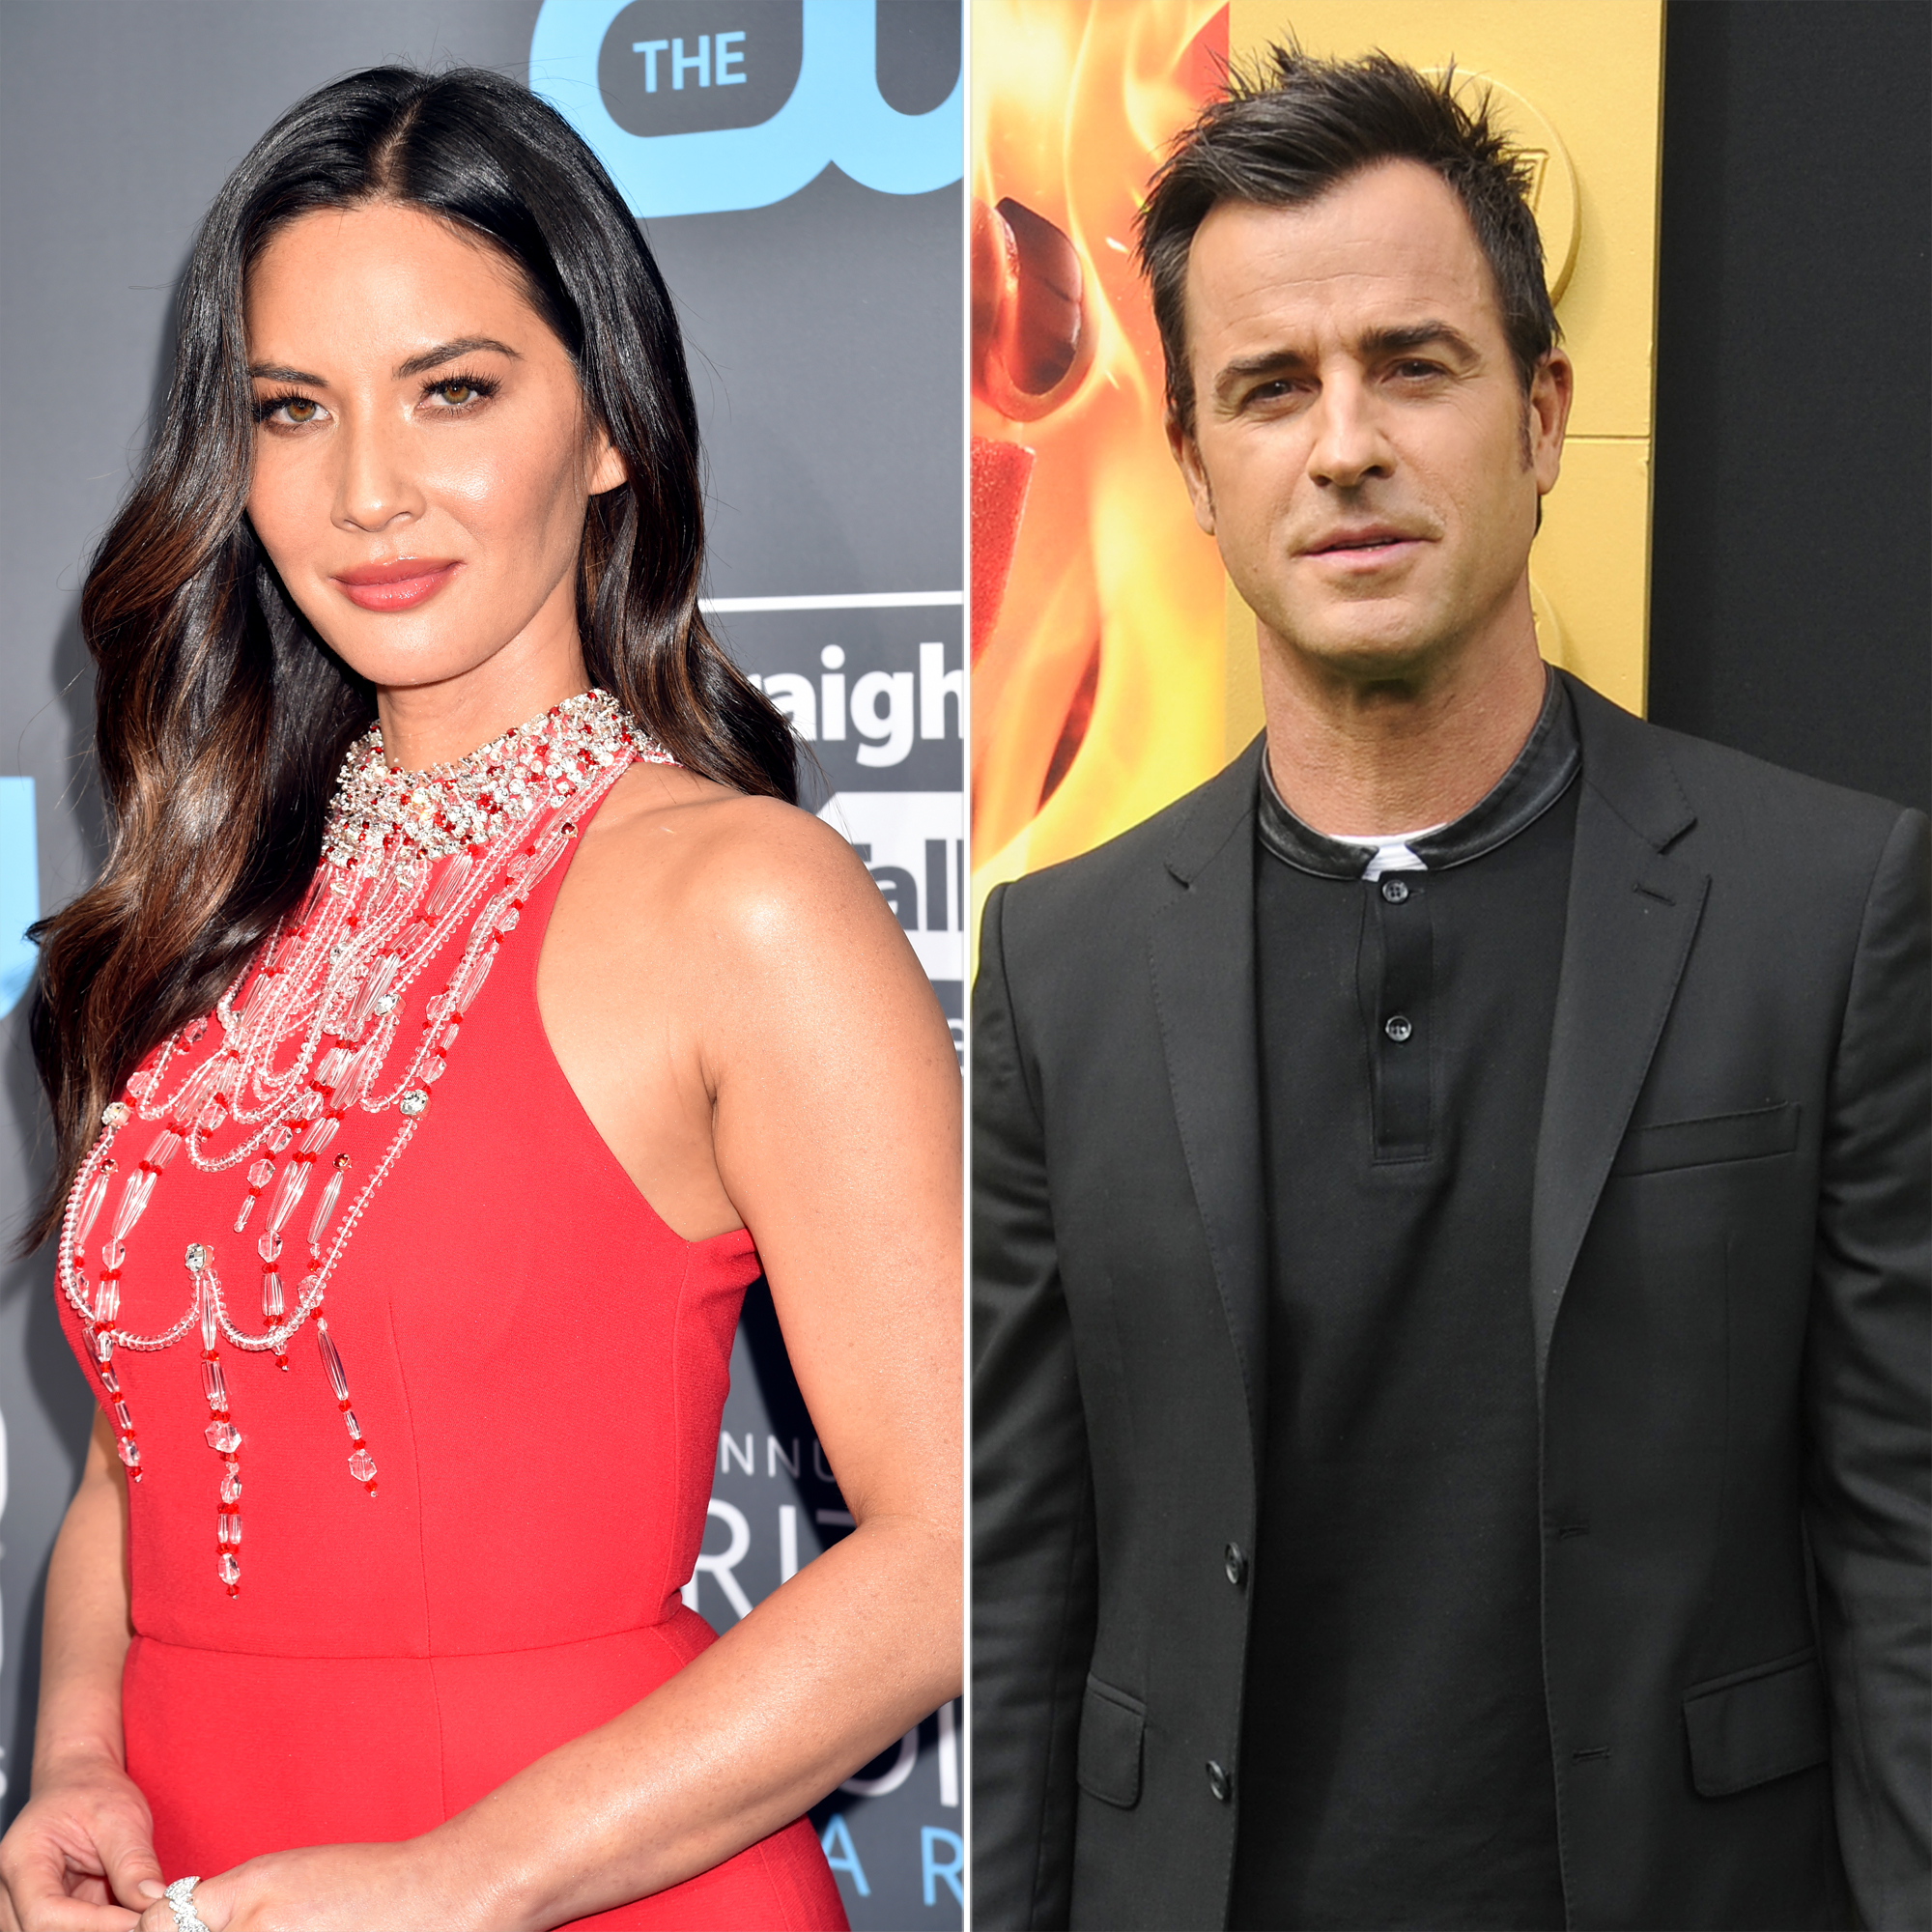 Olivia Munn and Justin Theroux not dating